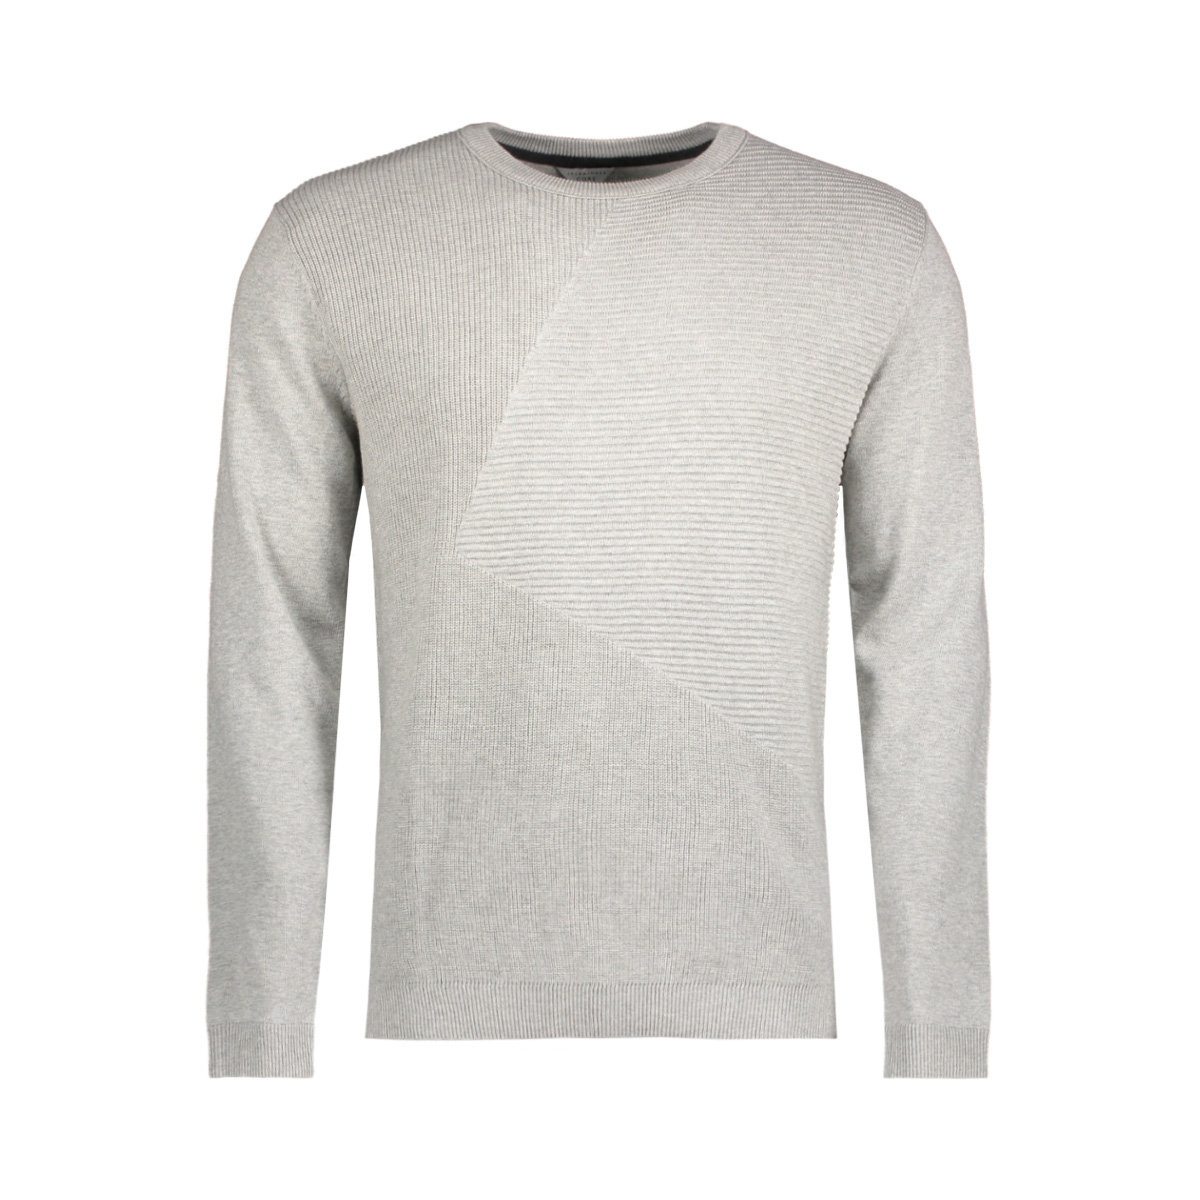 jcopenditon knit crew neck camp 12128544 jack & jones trui light grey melange